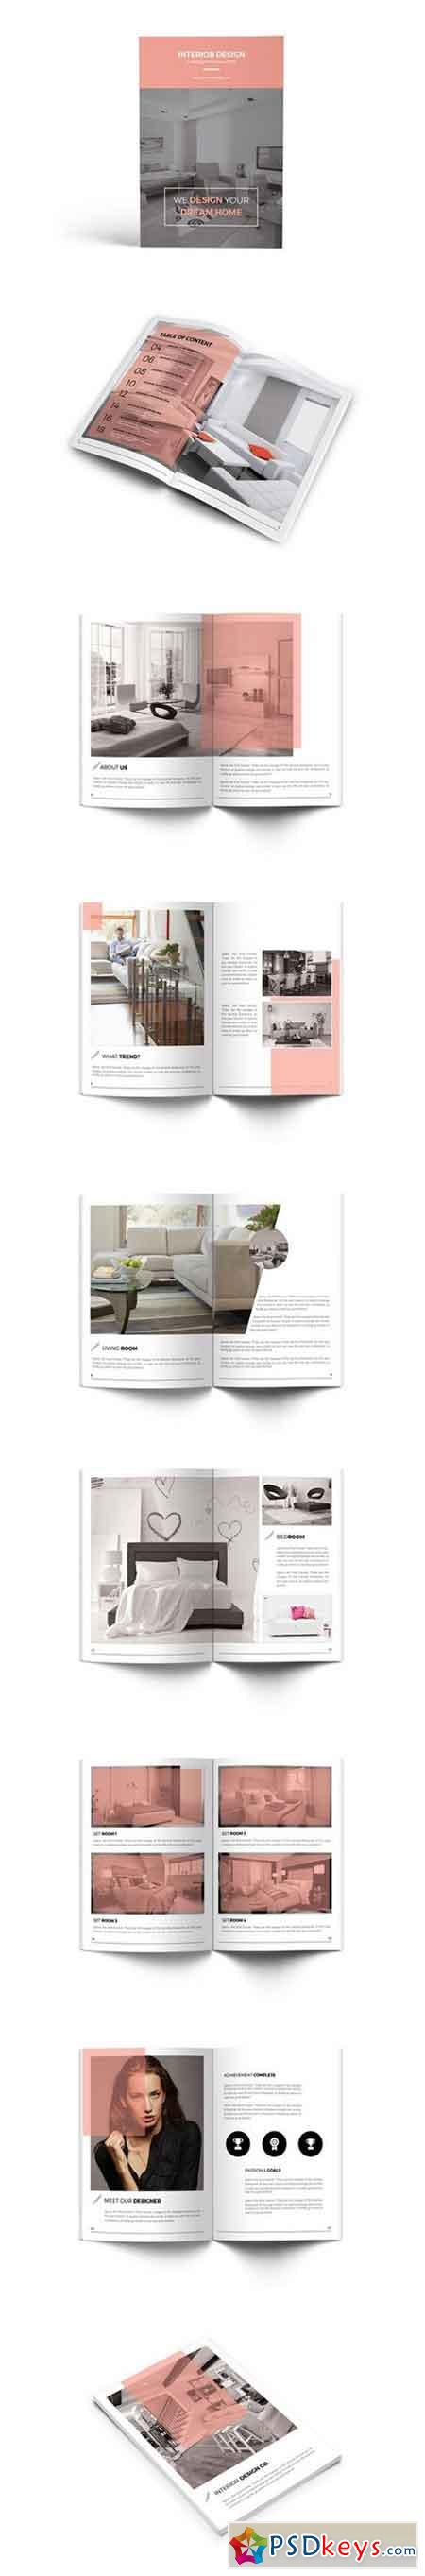 Interior Design Catalog Brochure 931778